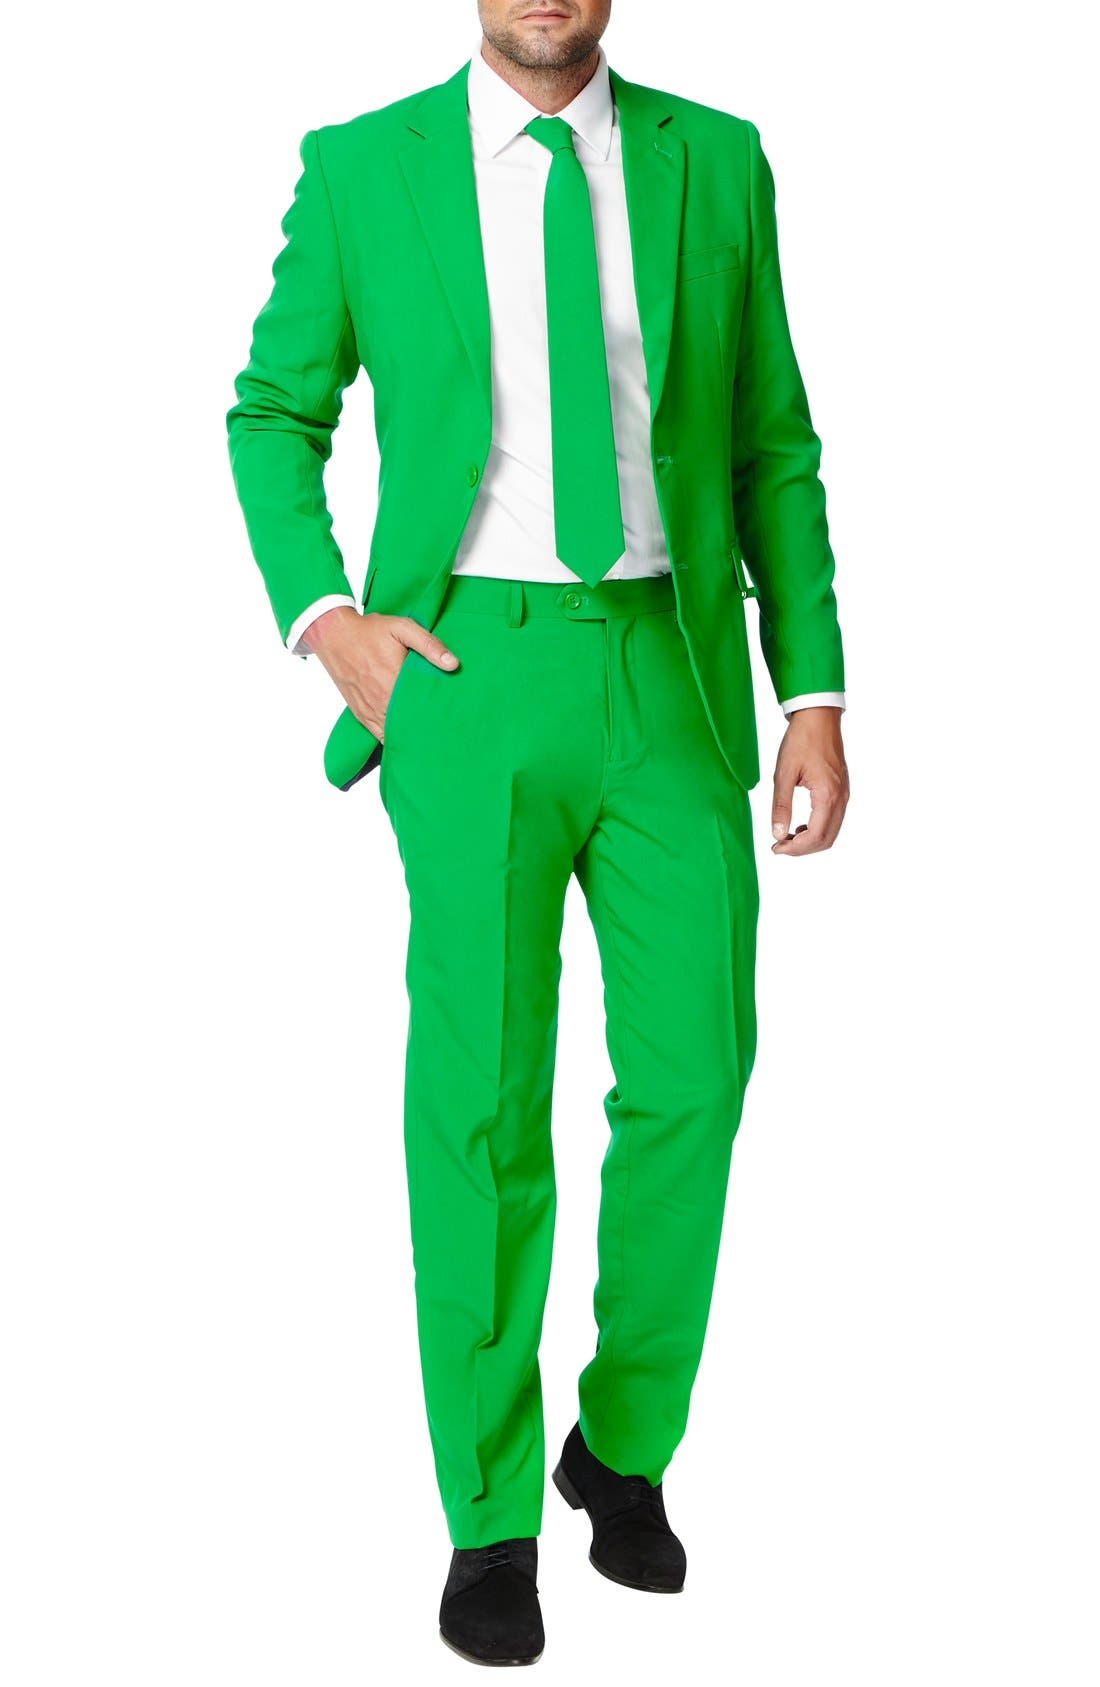 'Evergreen' Trim Fit Suit with Tie,                         Main,                         color, 300